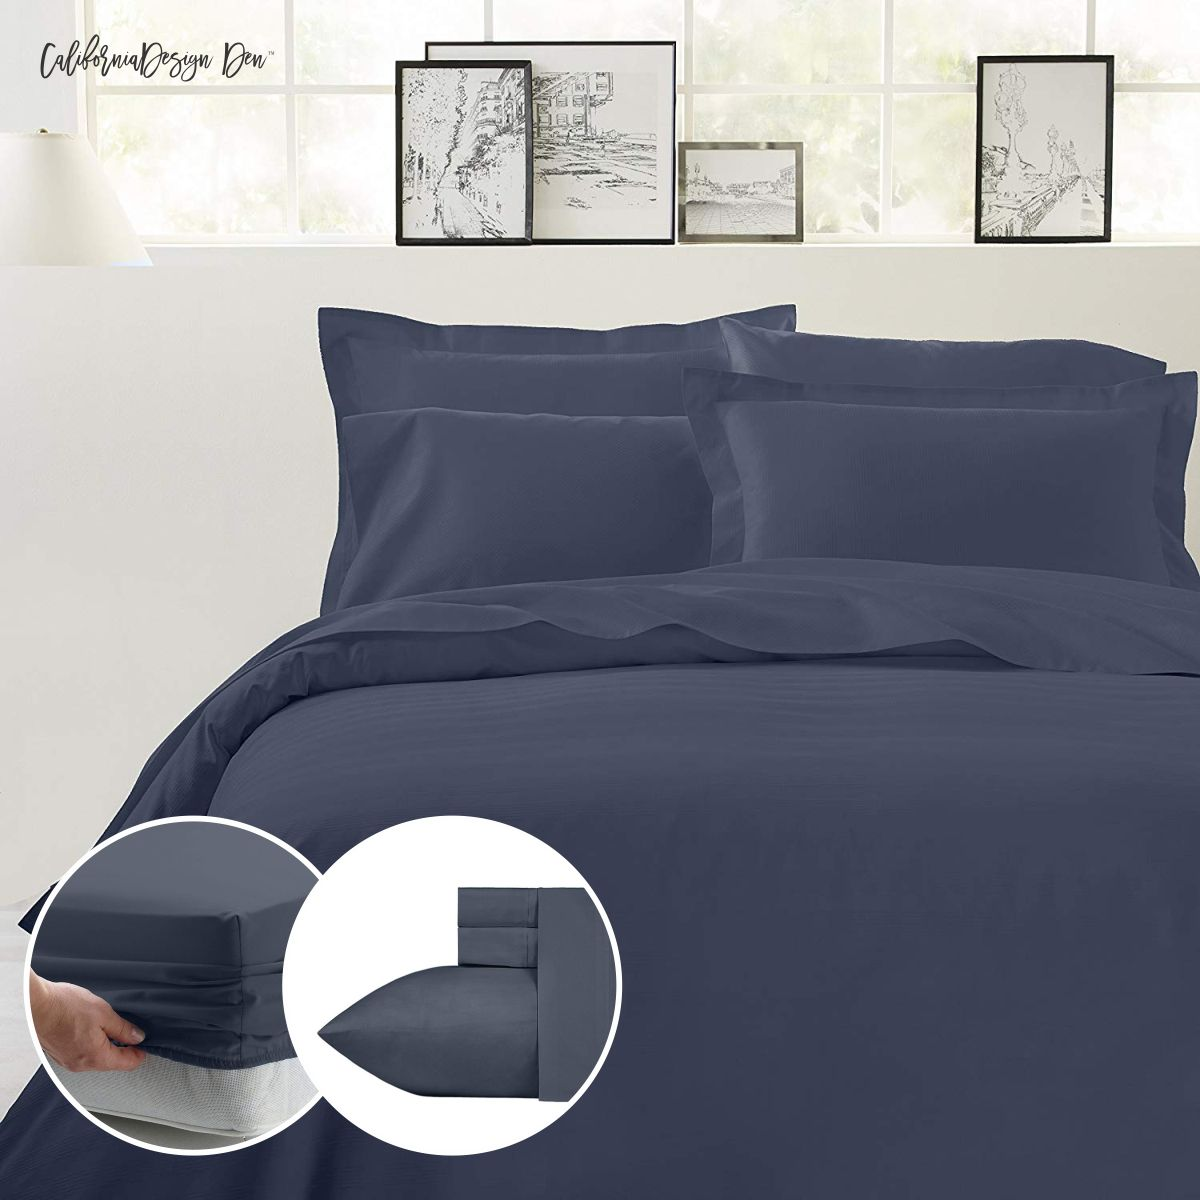 - If You Love The Luxury And Durability Of Hotel Sheets And The Look